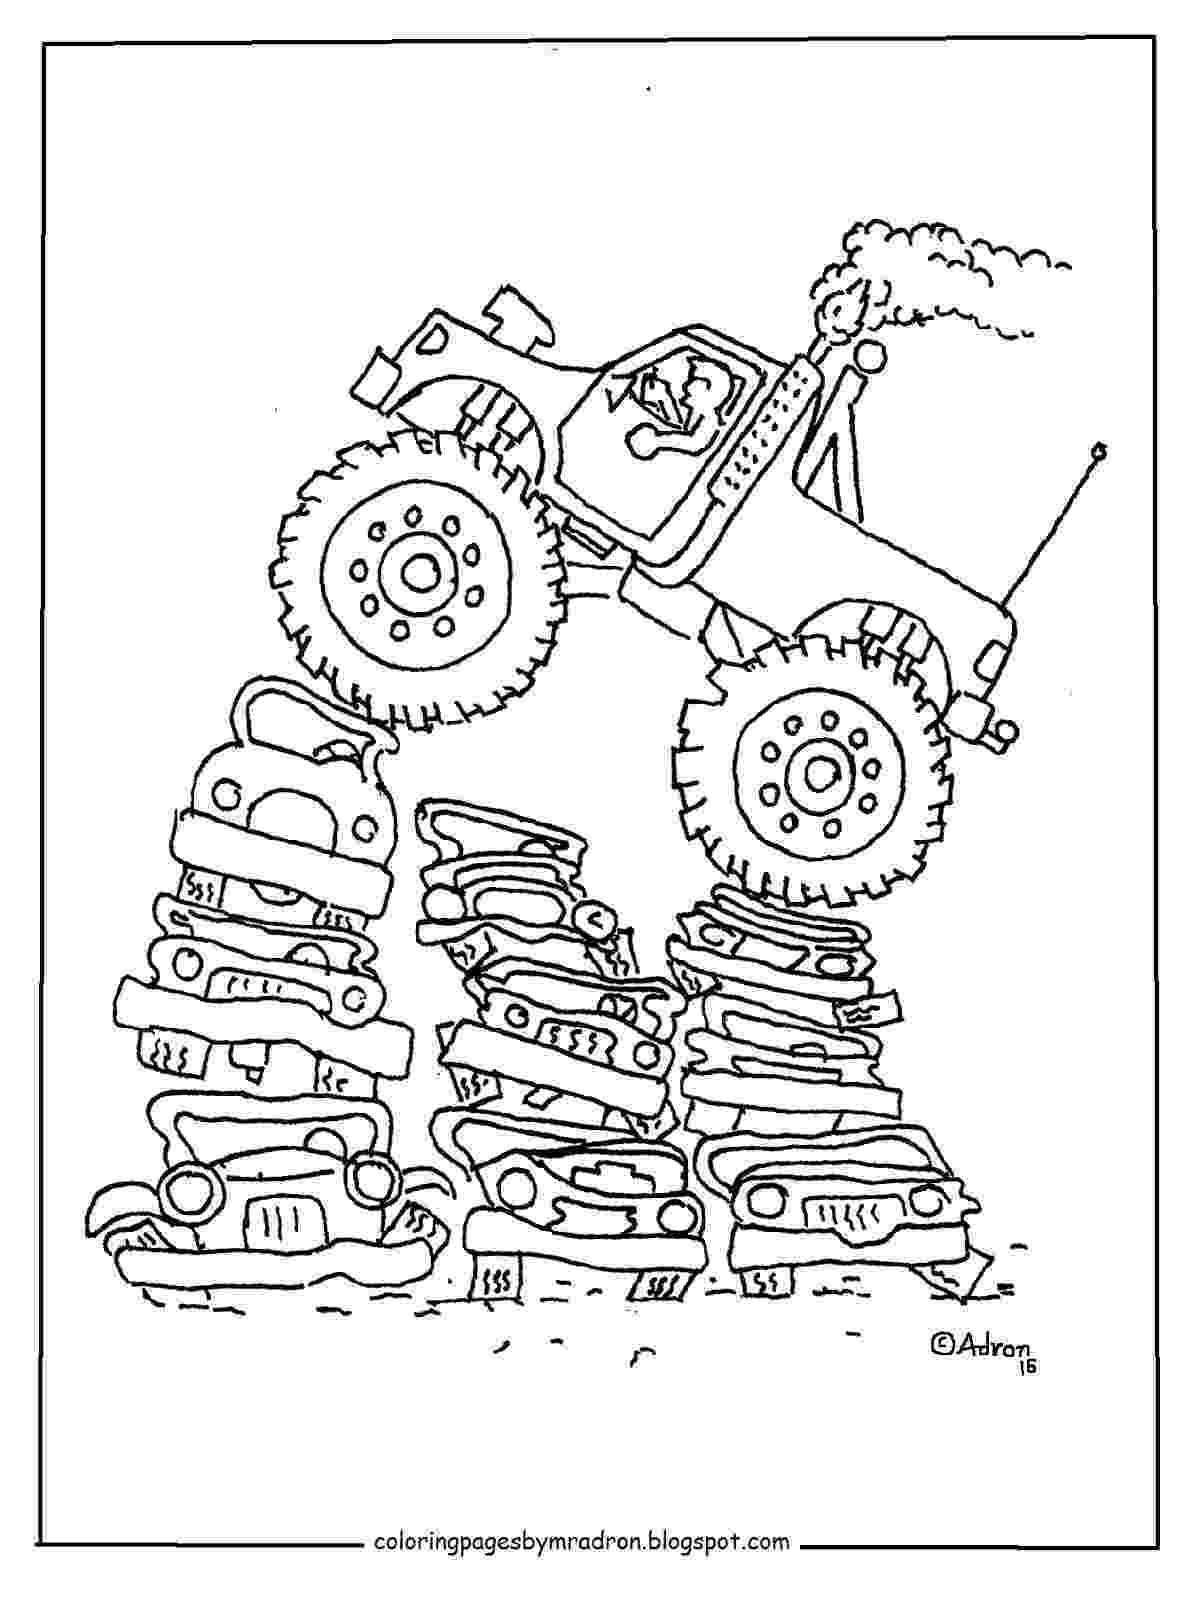 color monster trucks coloring pages for kids by mr adron printable monster color monster trucks